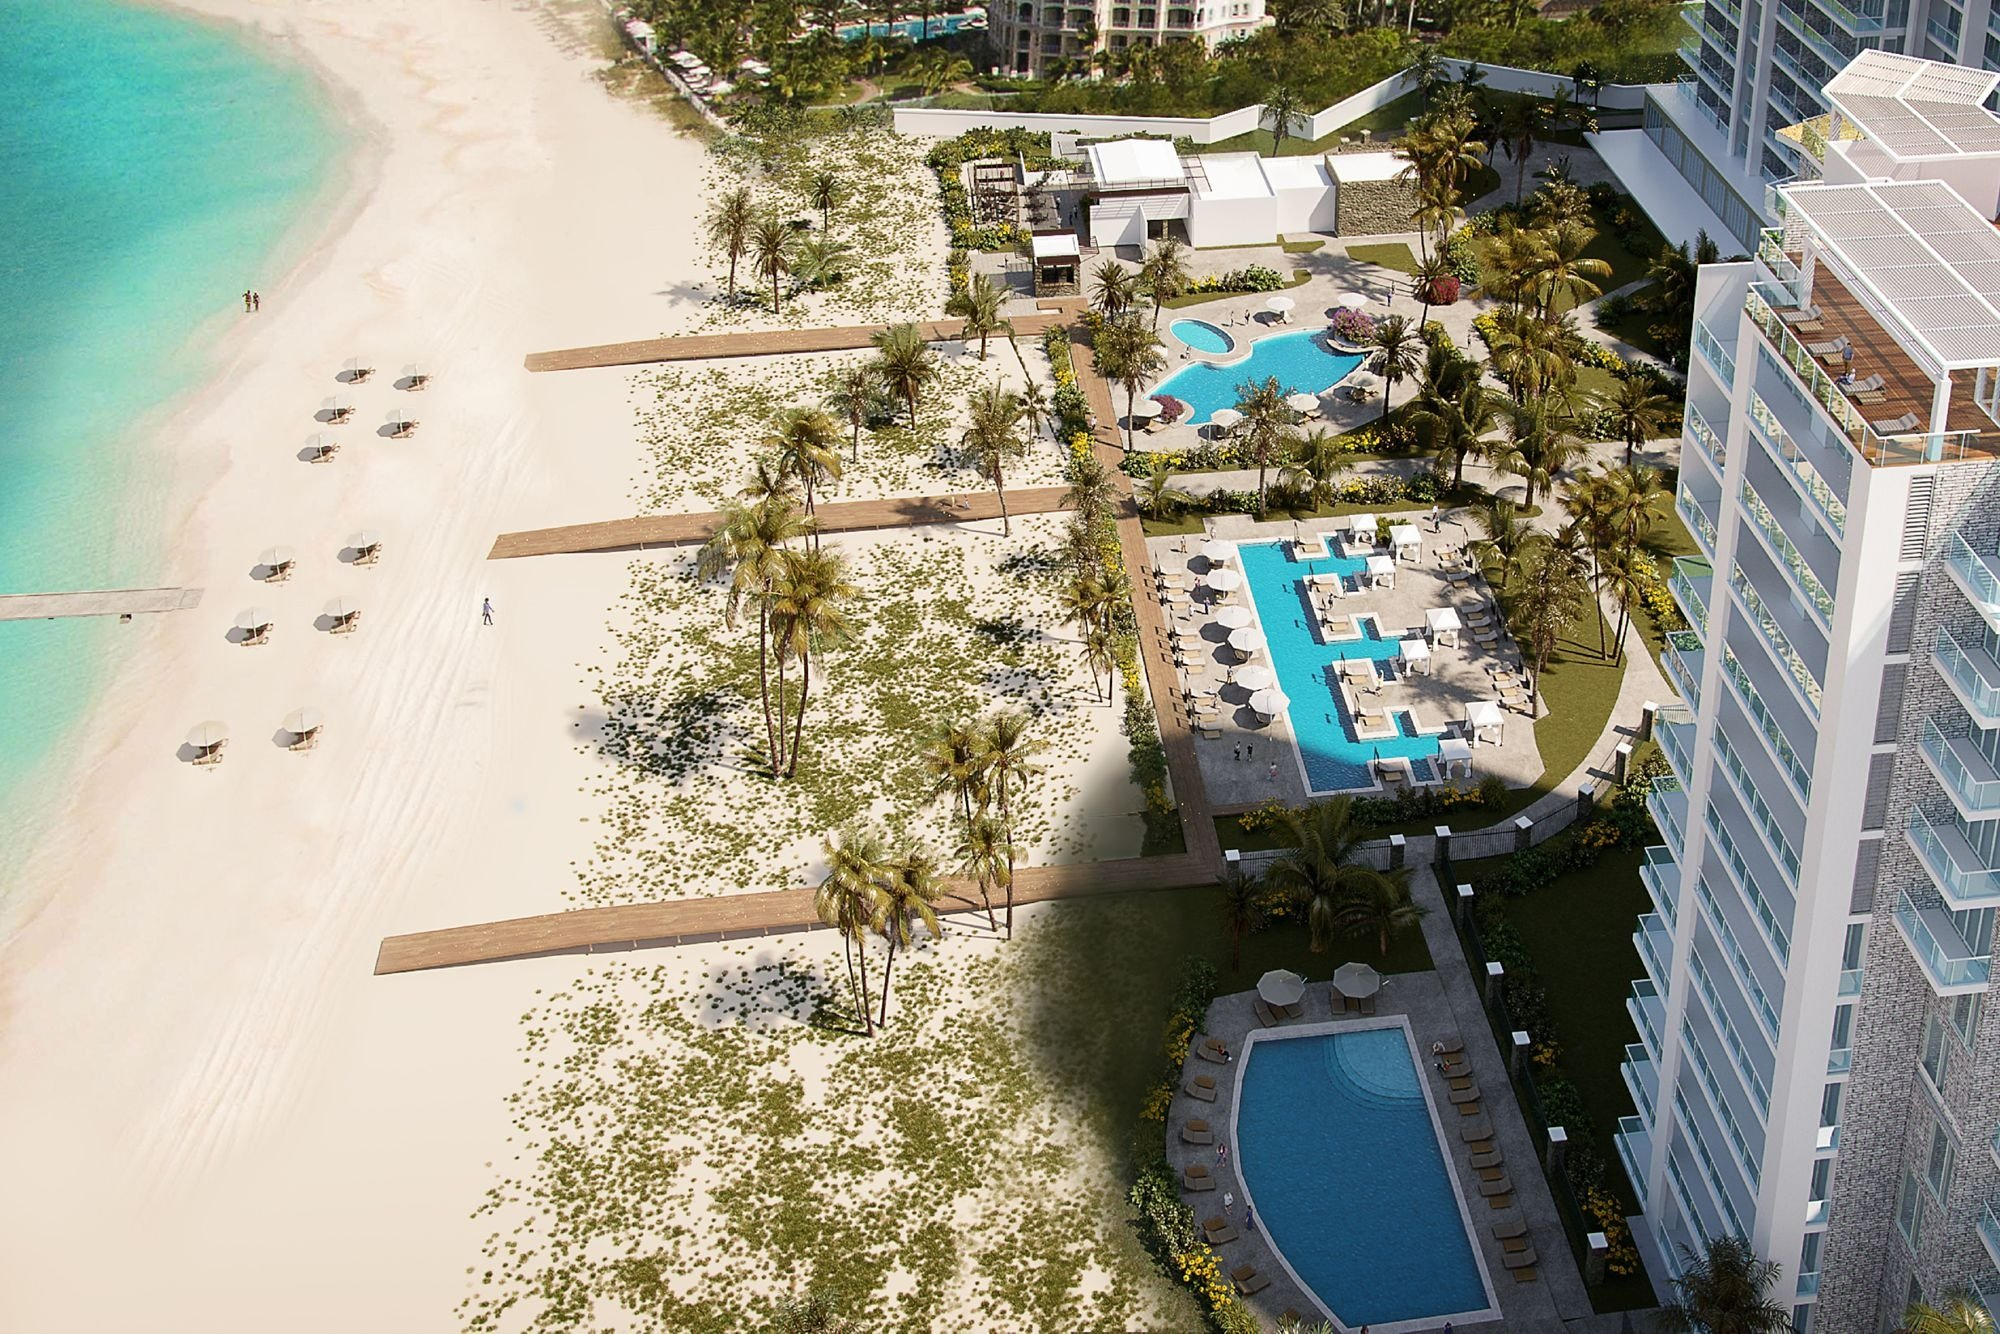 Aerial view of pools and beaches at the new Ritz-Carlton Turks & Caicos resort